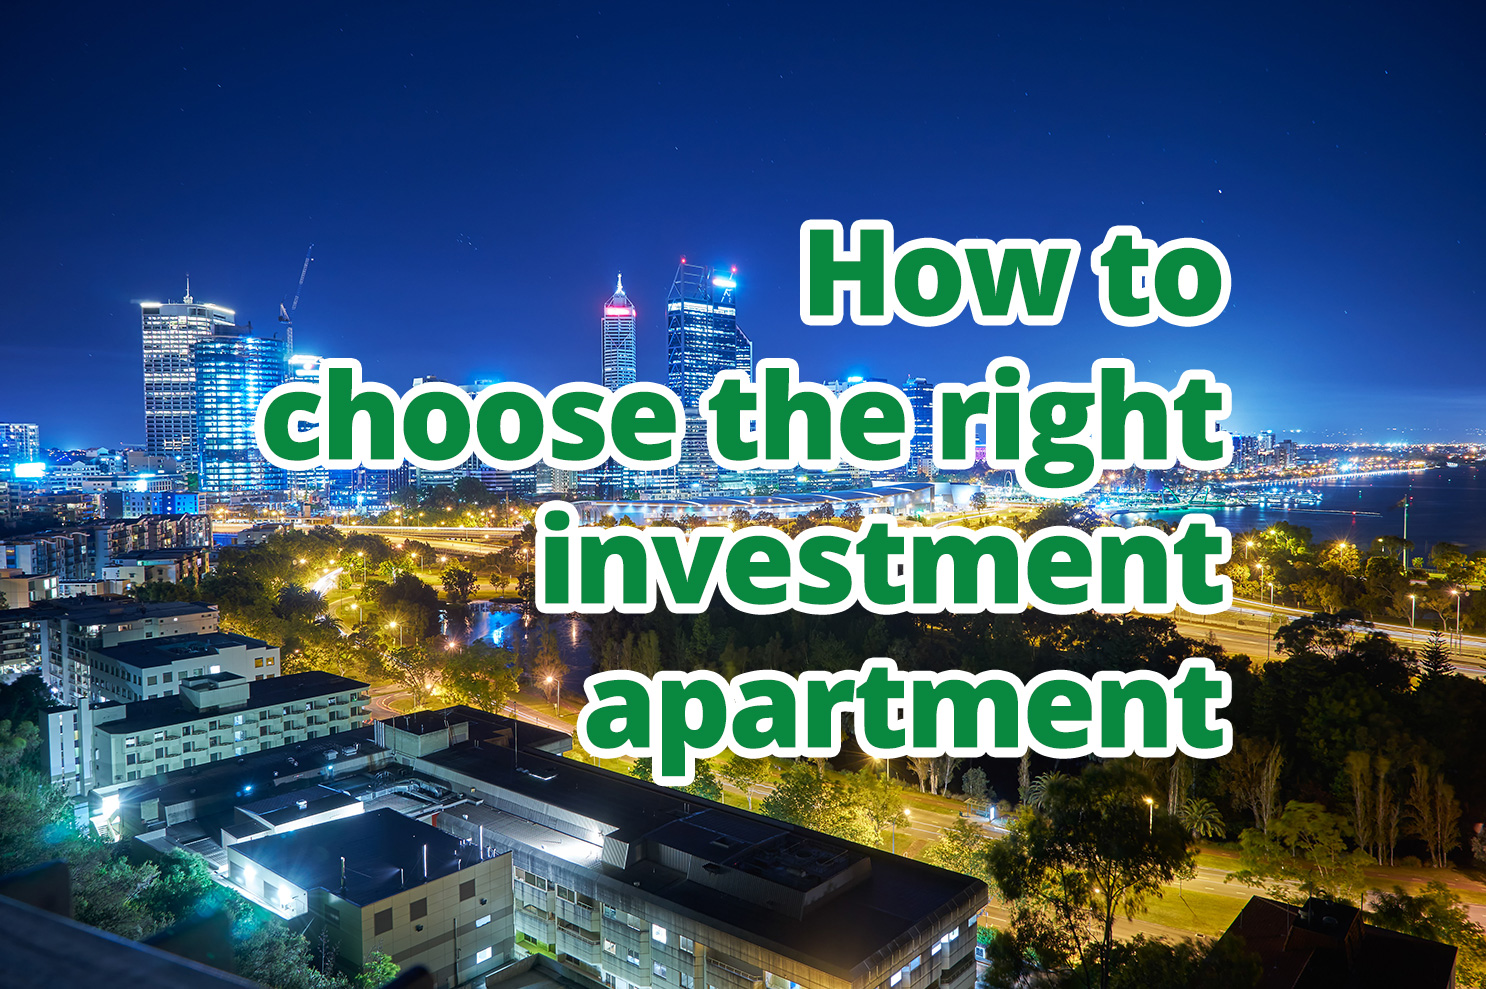 How to choose the right investment apartment